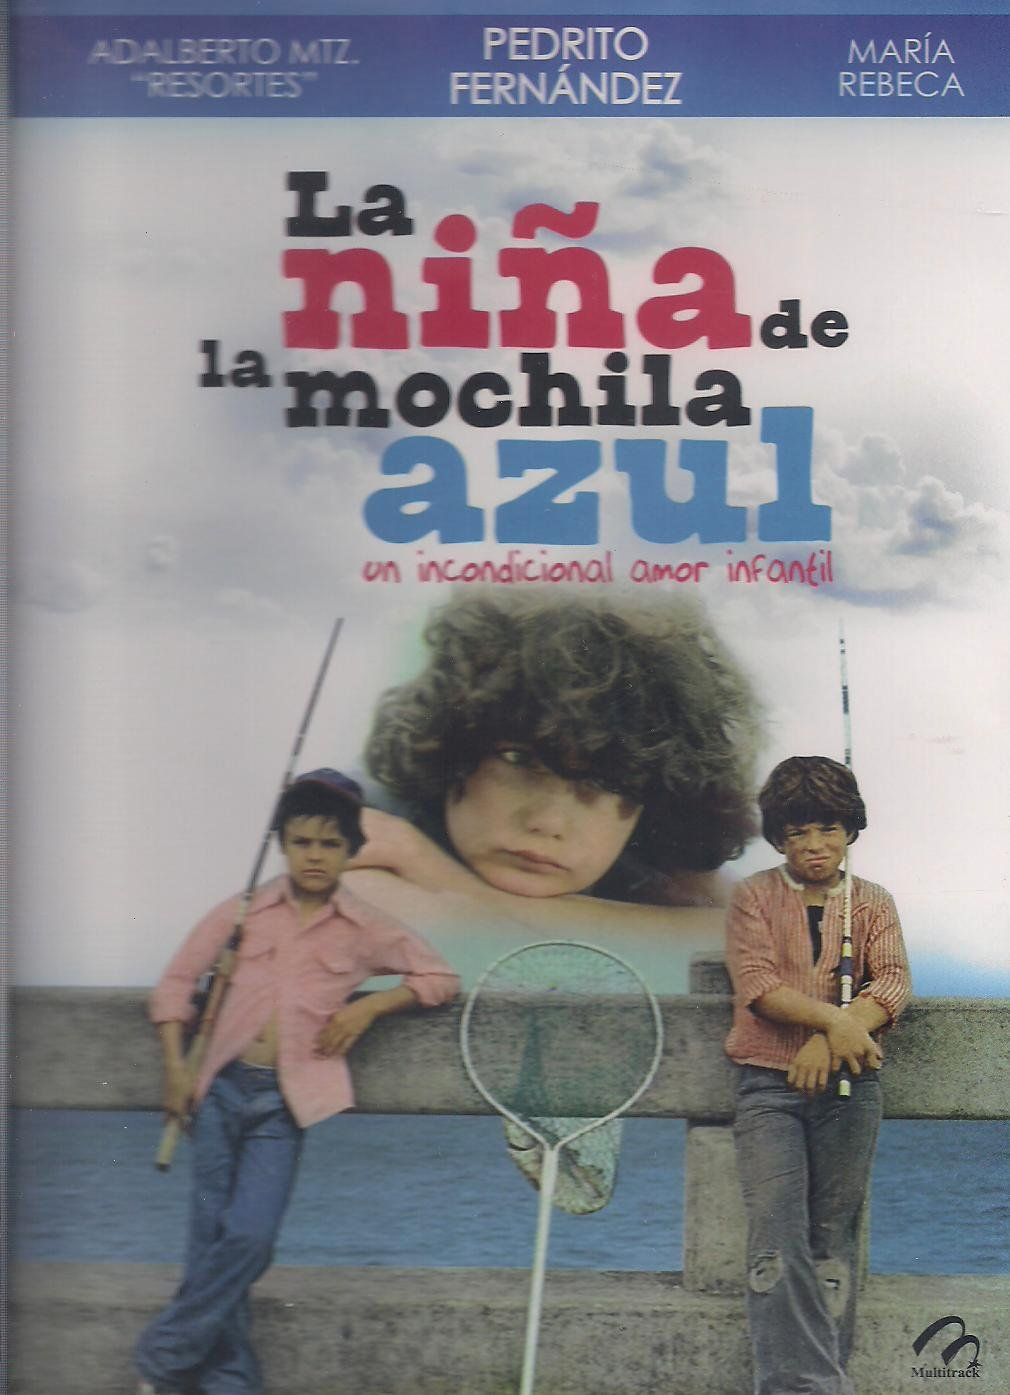 Amazon.com: LA NINA DE LA MOCHILA AZUL UNA INCONDICIONAL AMOR INFANTIL: Movies & TV